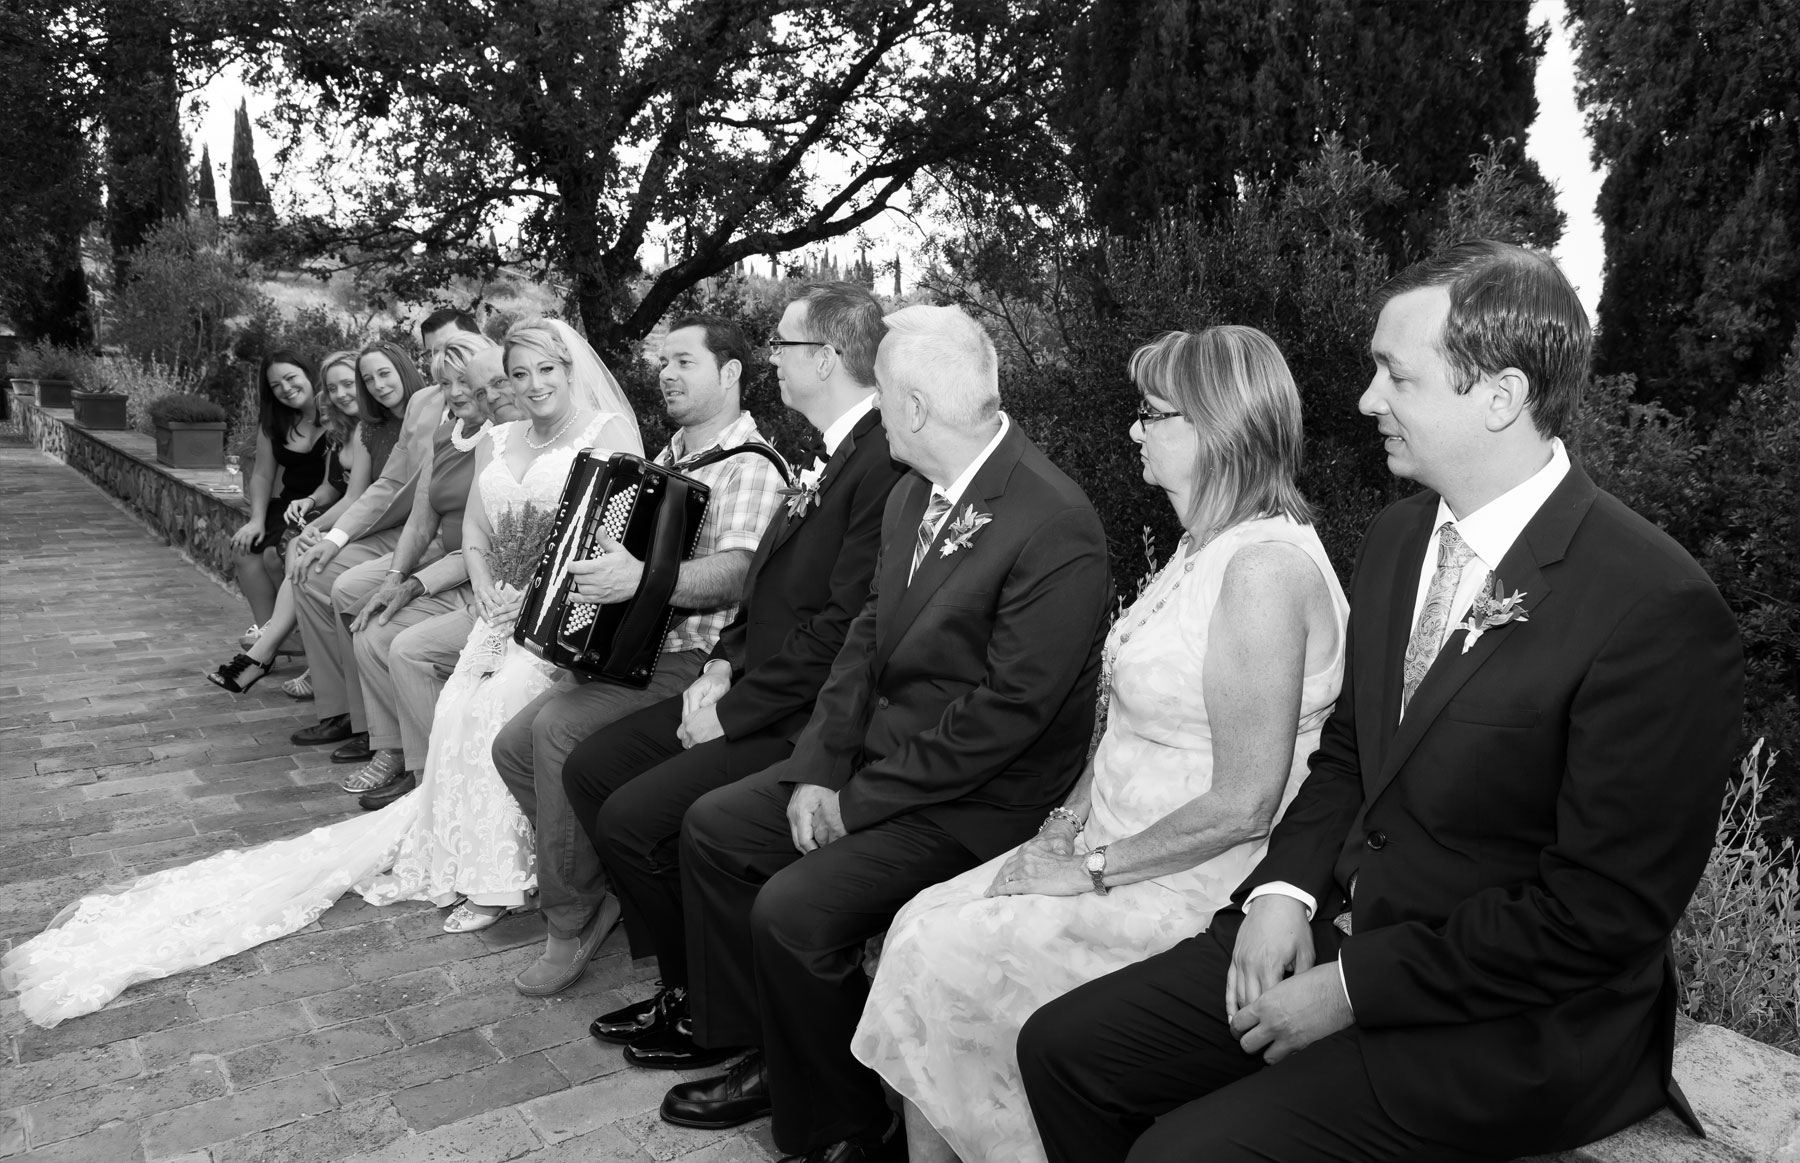 Wedding party sitting on wall with acordian player